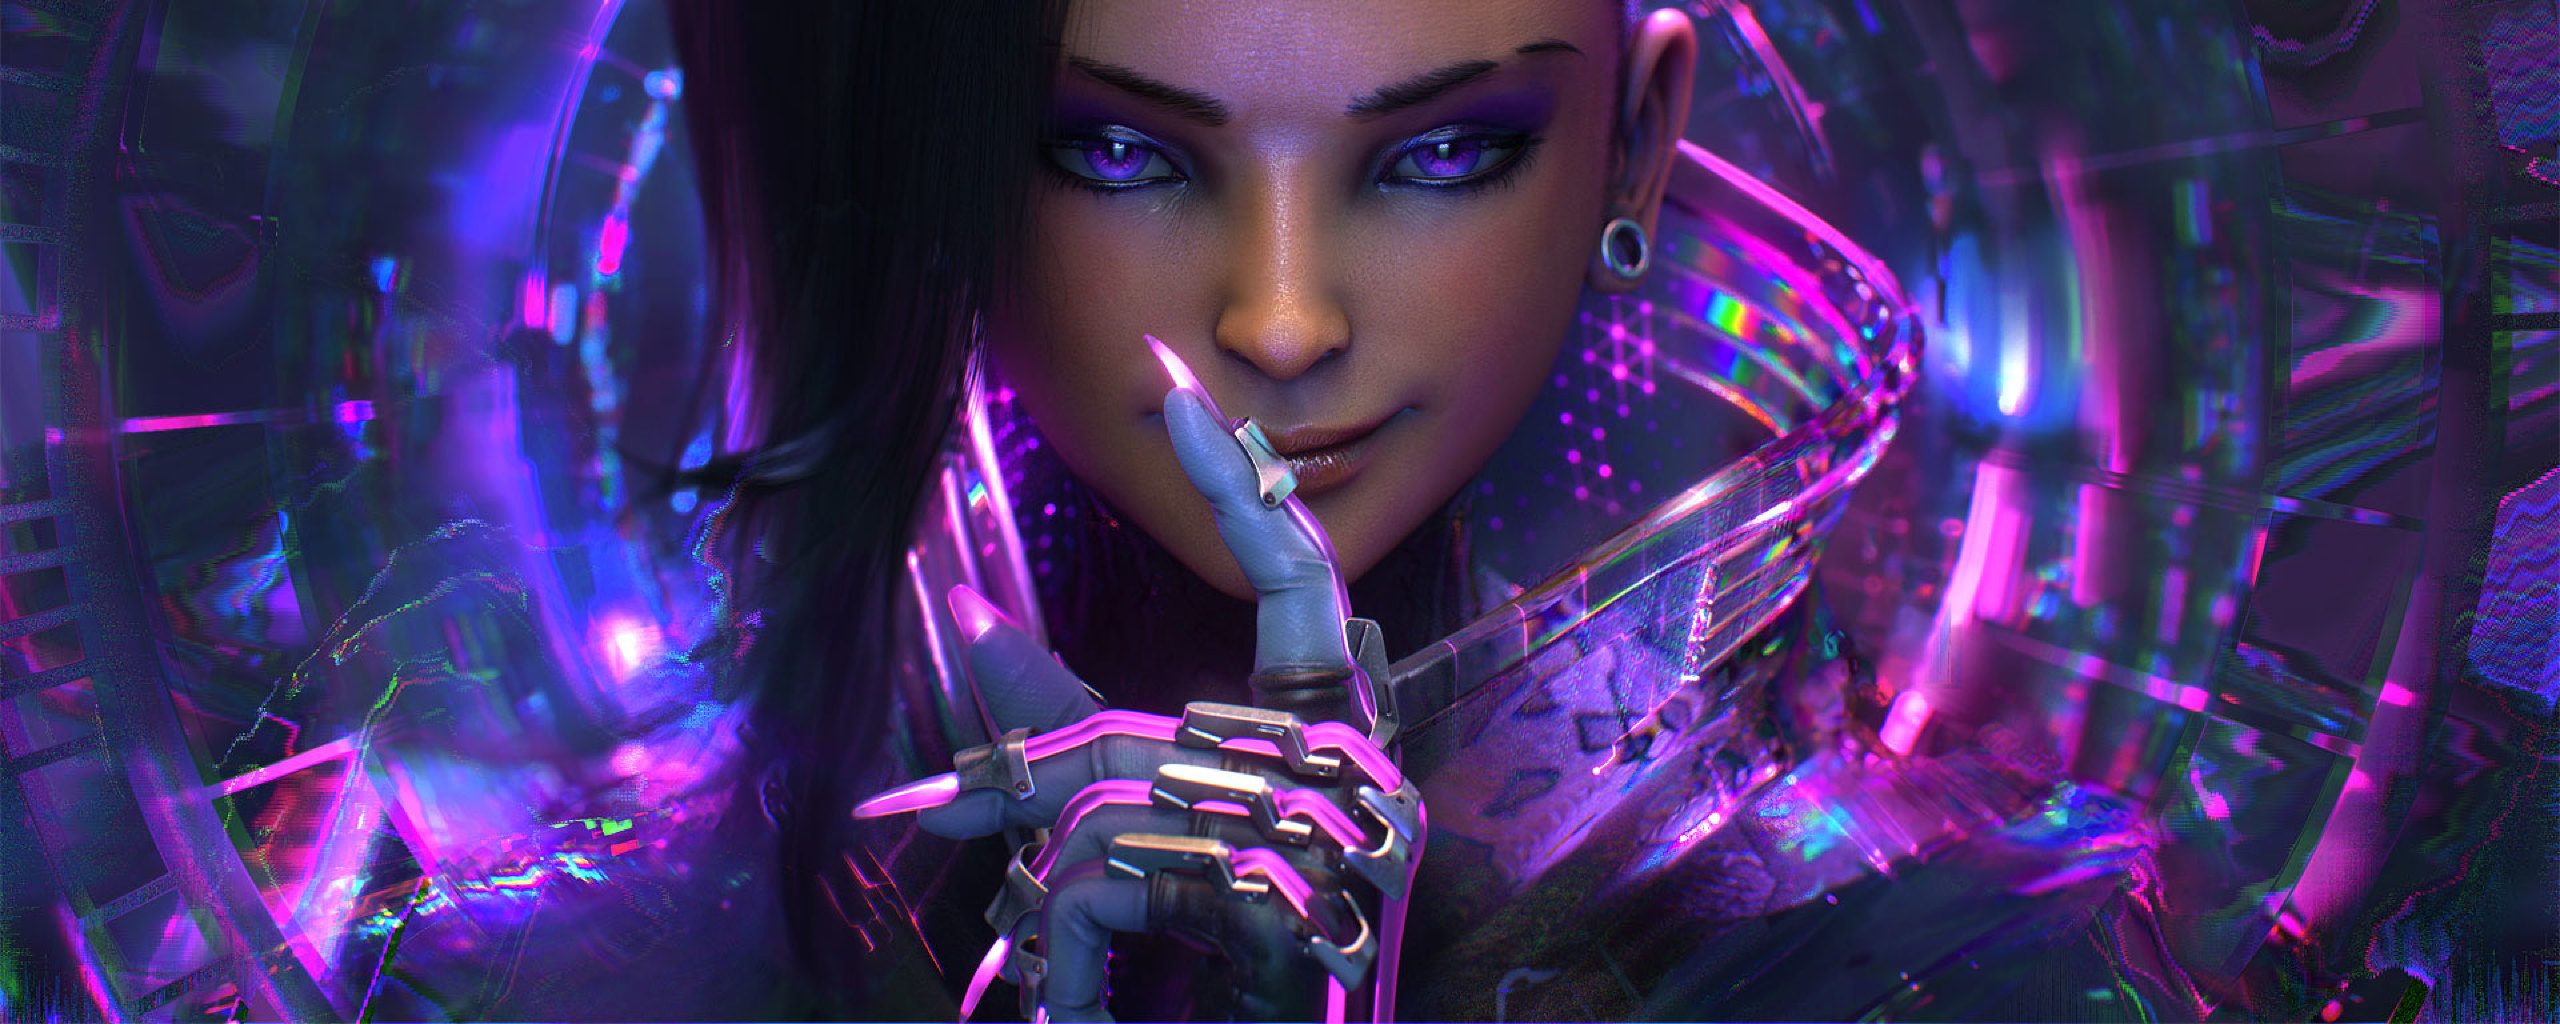 Overwatch Wallpaper Dual Monitor: Sombra Overwatch Artwork, Full HD Wallpaper